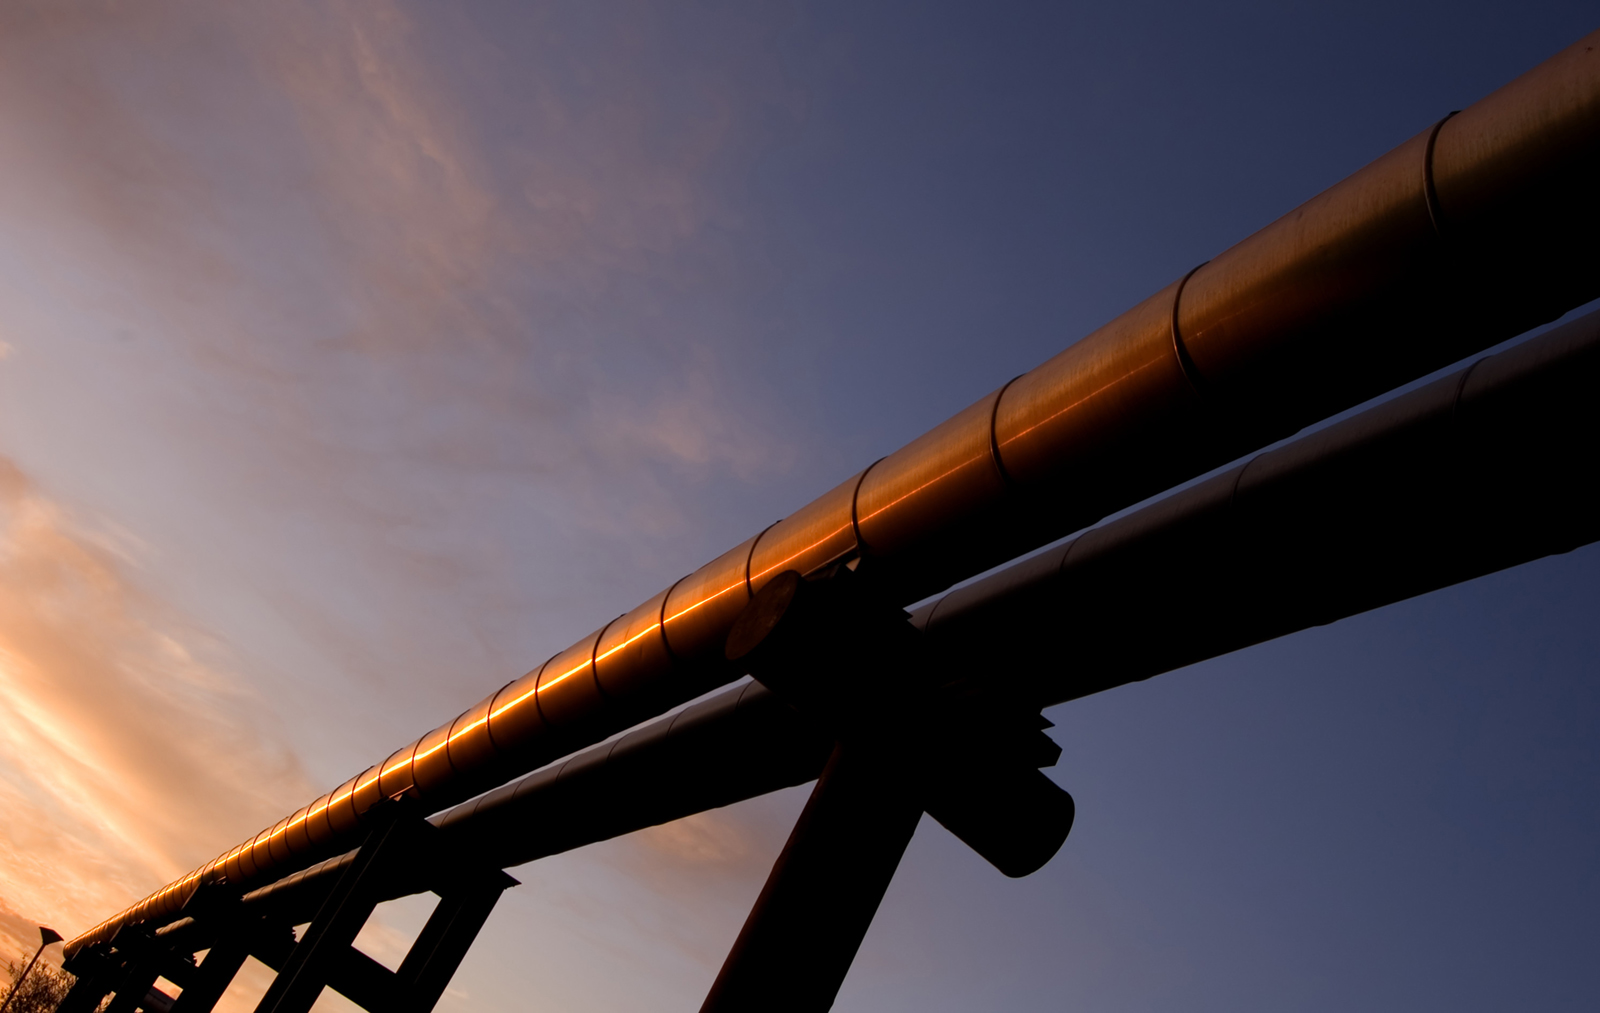 elevated gas pipes against sunset sky